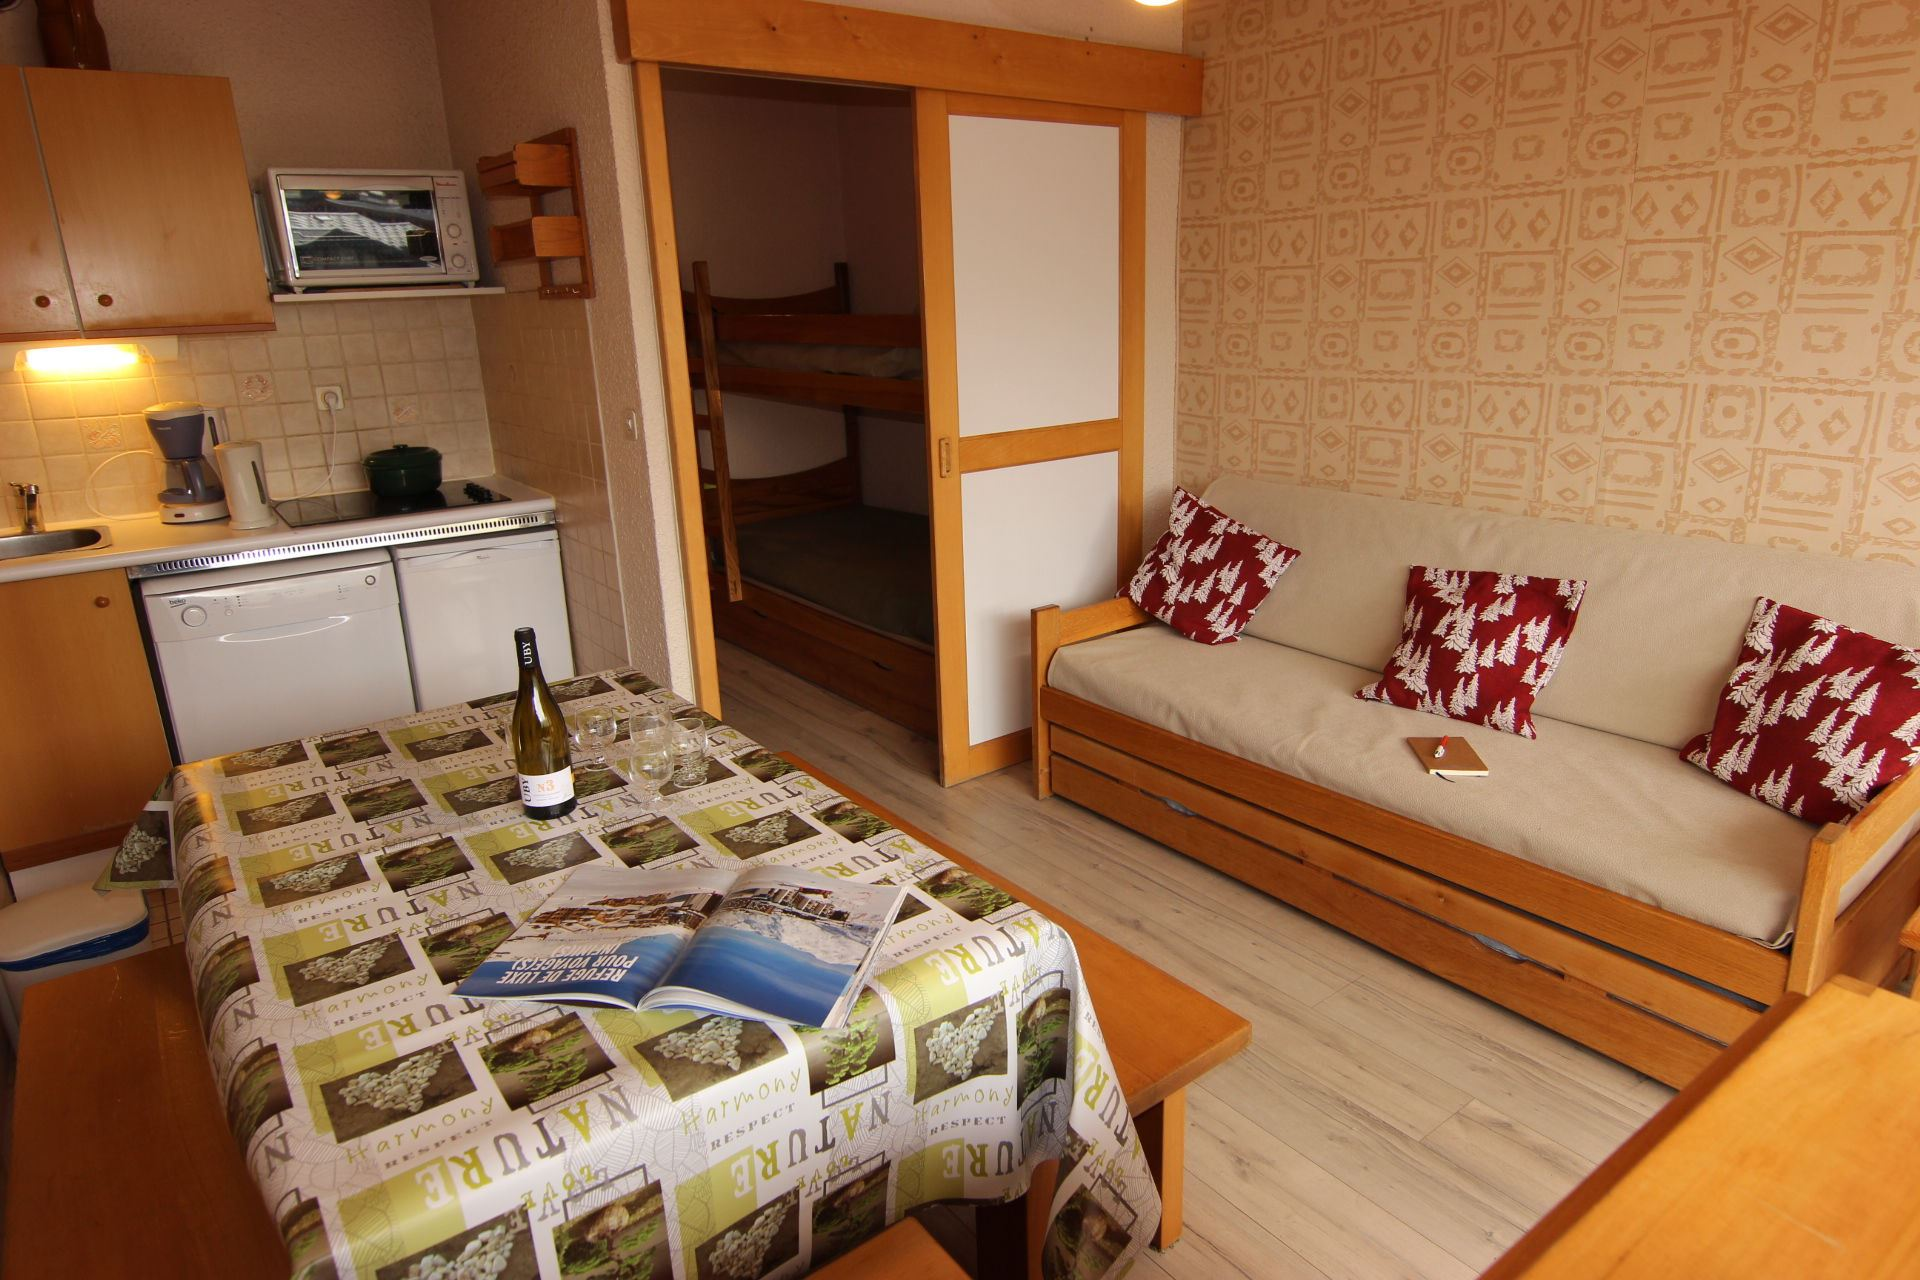 LAC DU LOU 307 / 2 ROOMS 6 PERSONS - 1 BRONZE SNOWFLAKE - VTI